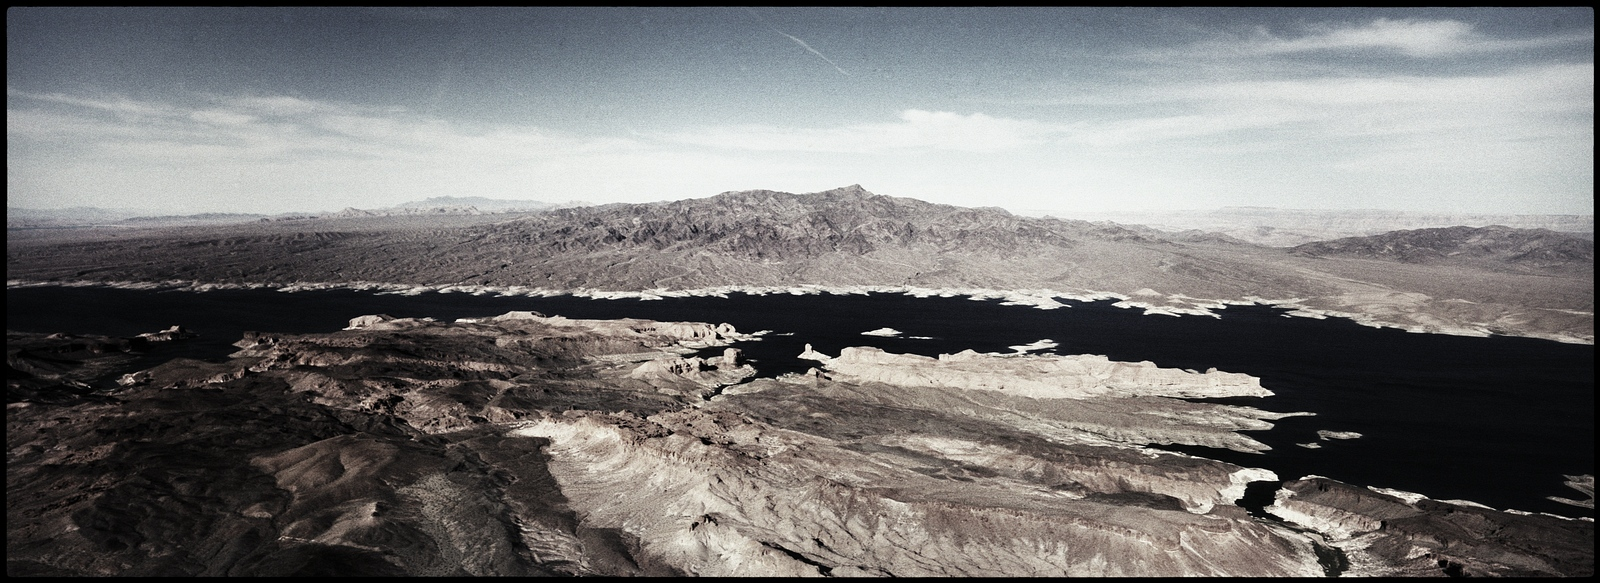 Lake Mead, AZ, USA.All pictures are © Cyril Fakiri - No use without permission.